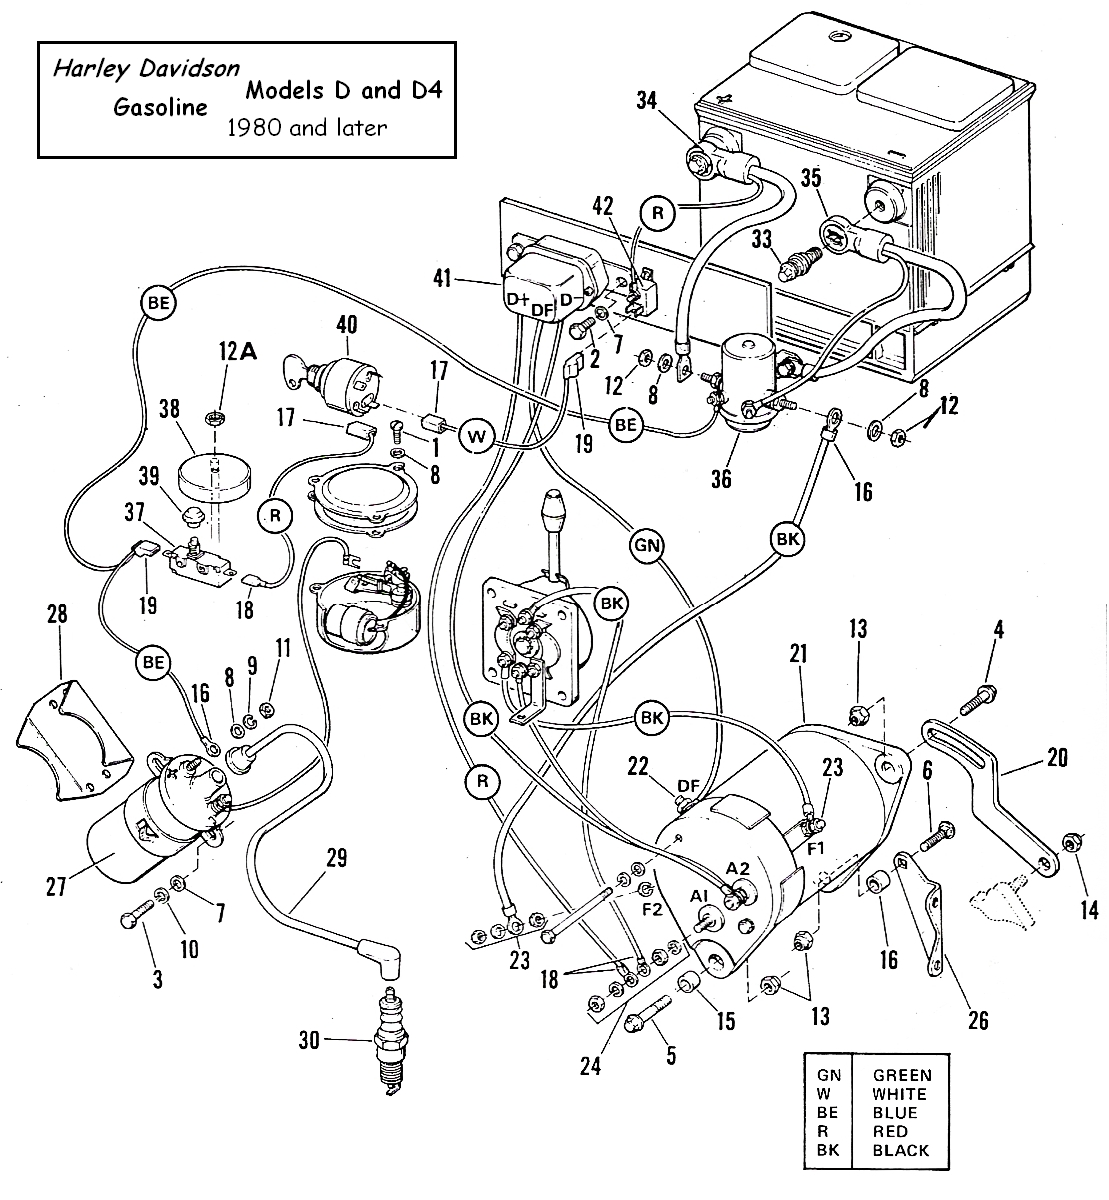 HG 101 vintagegolfcartparts com harley davidson wiring diagram download at panicattacktreatment.co